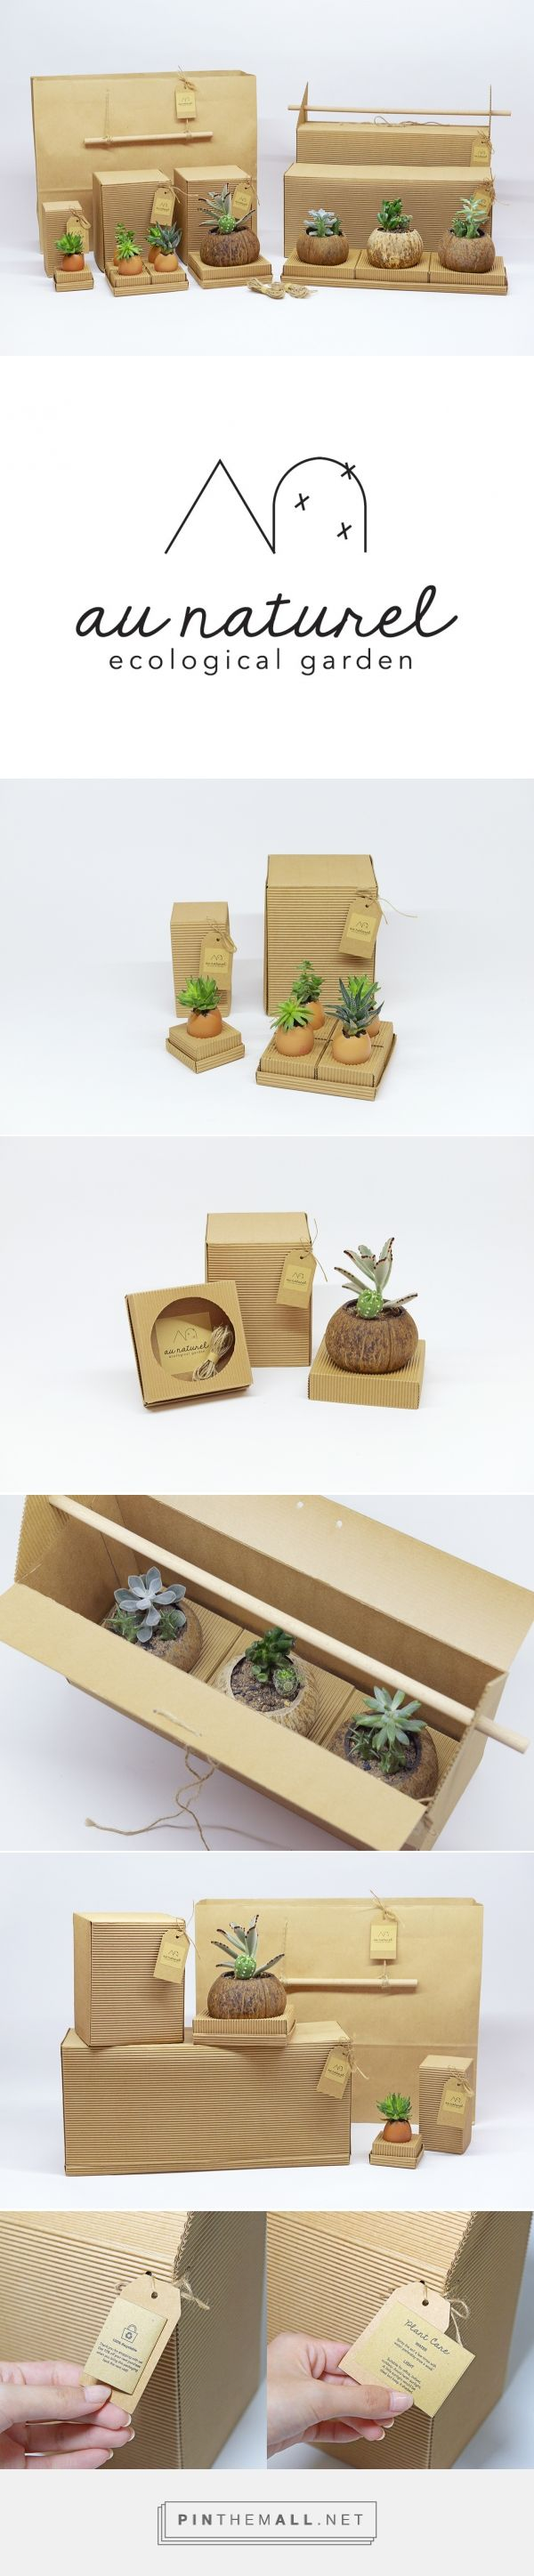 Branding, graphic design and packaging for Au Naturel | Ecological Garden on Behance by Tan Lixing Singapore, Singapore curated by Packaging Diva PD. Plants are packed in a system of kraft packaging boxes so your plants will be protected and safe during transportation. Class project.